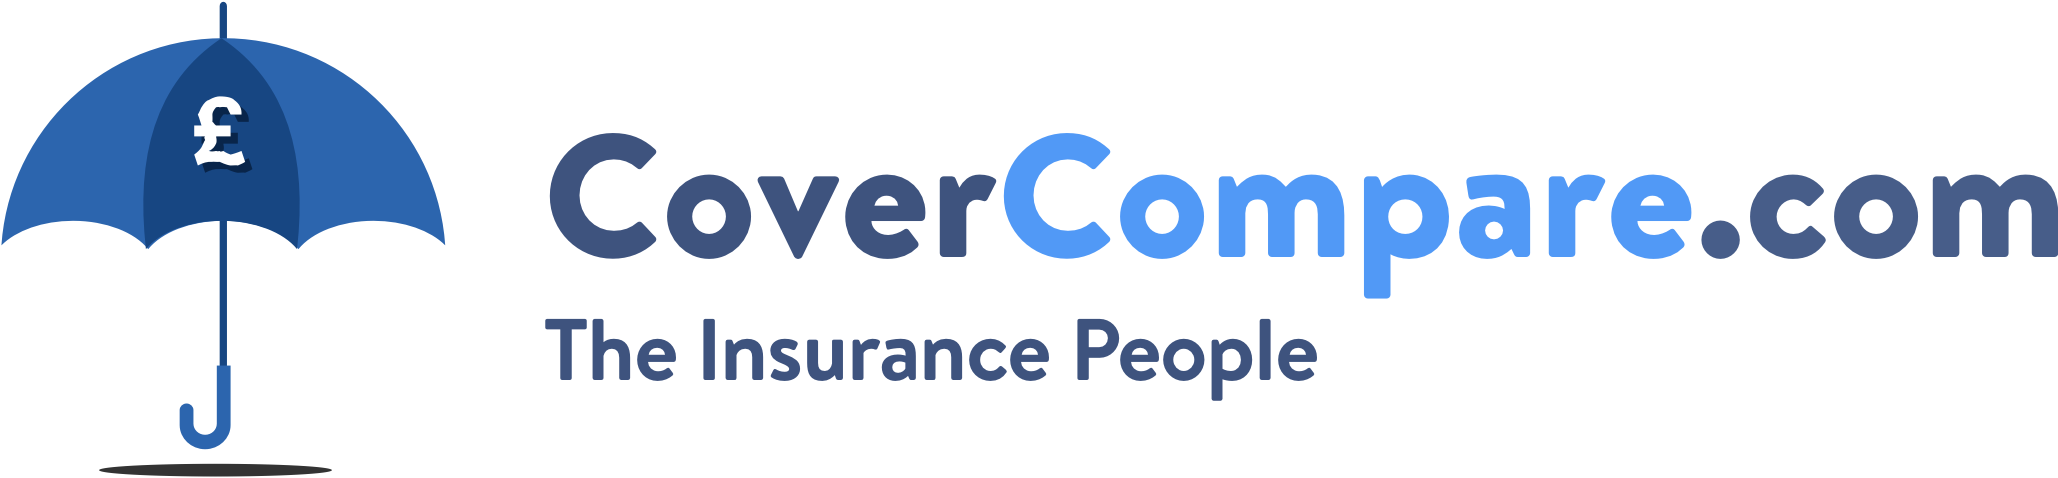 covercompare-logo